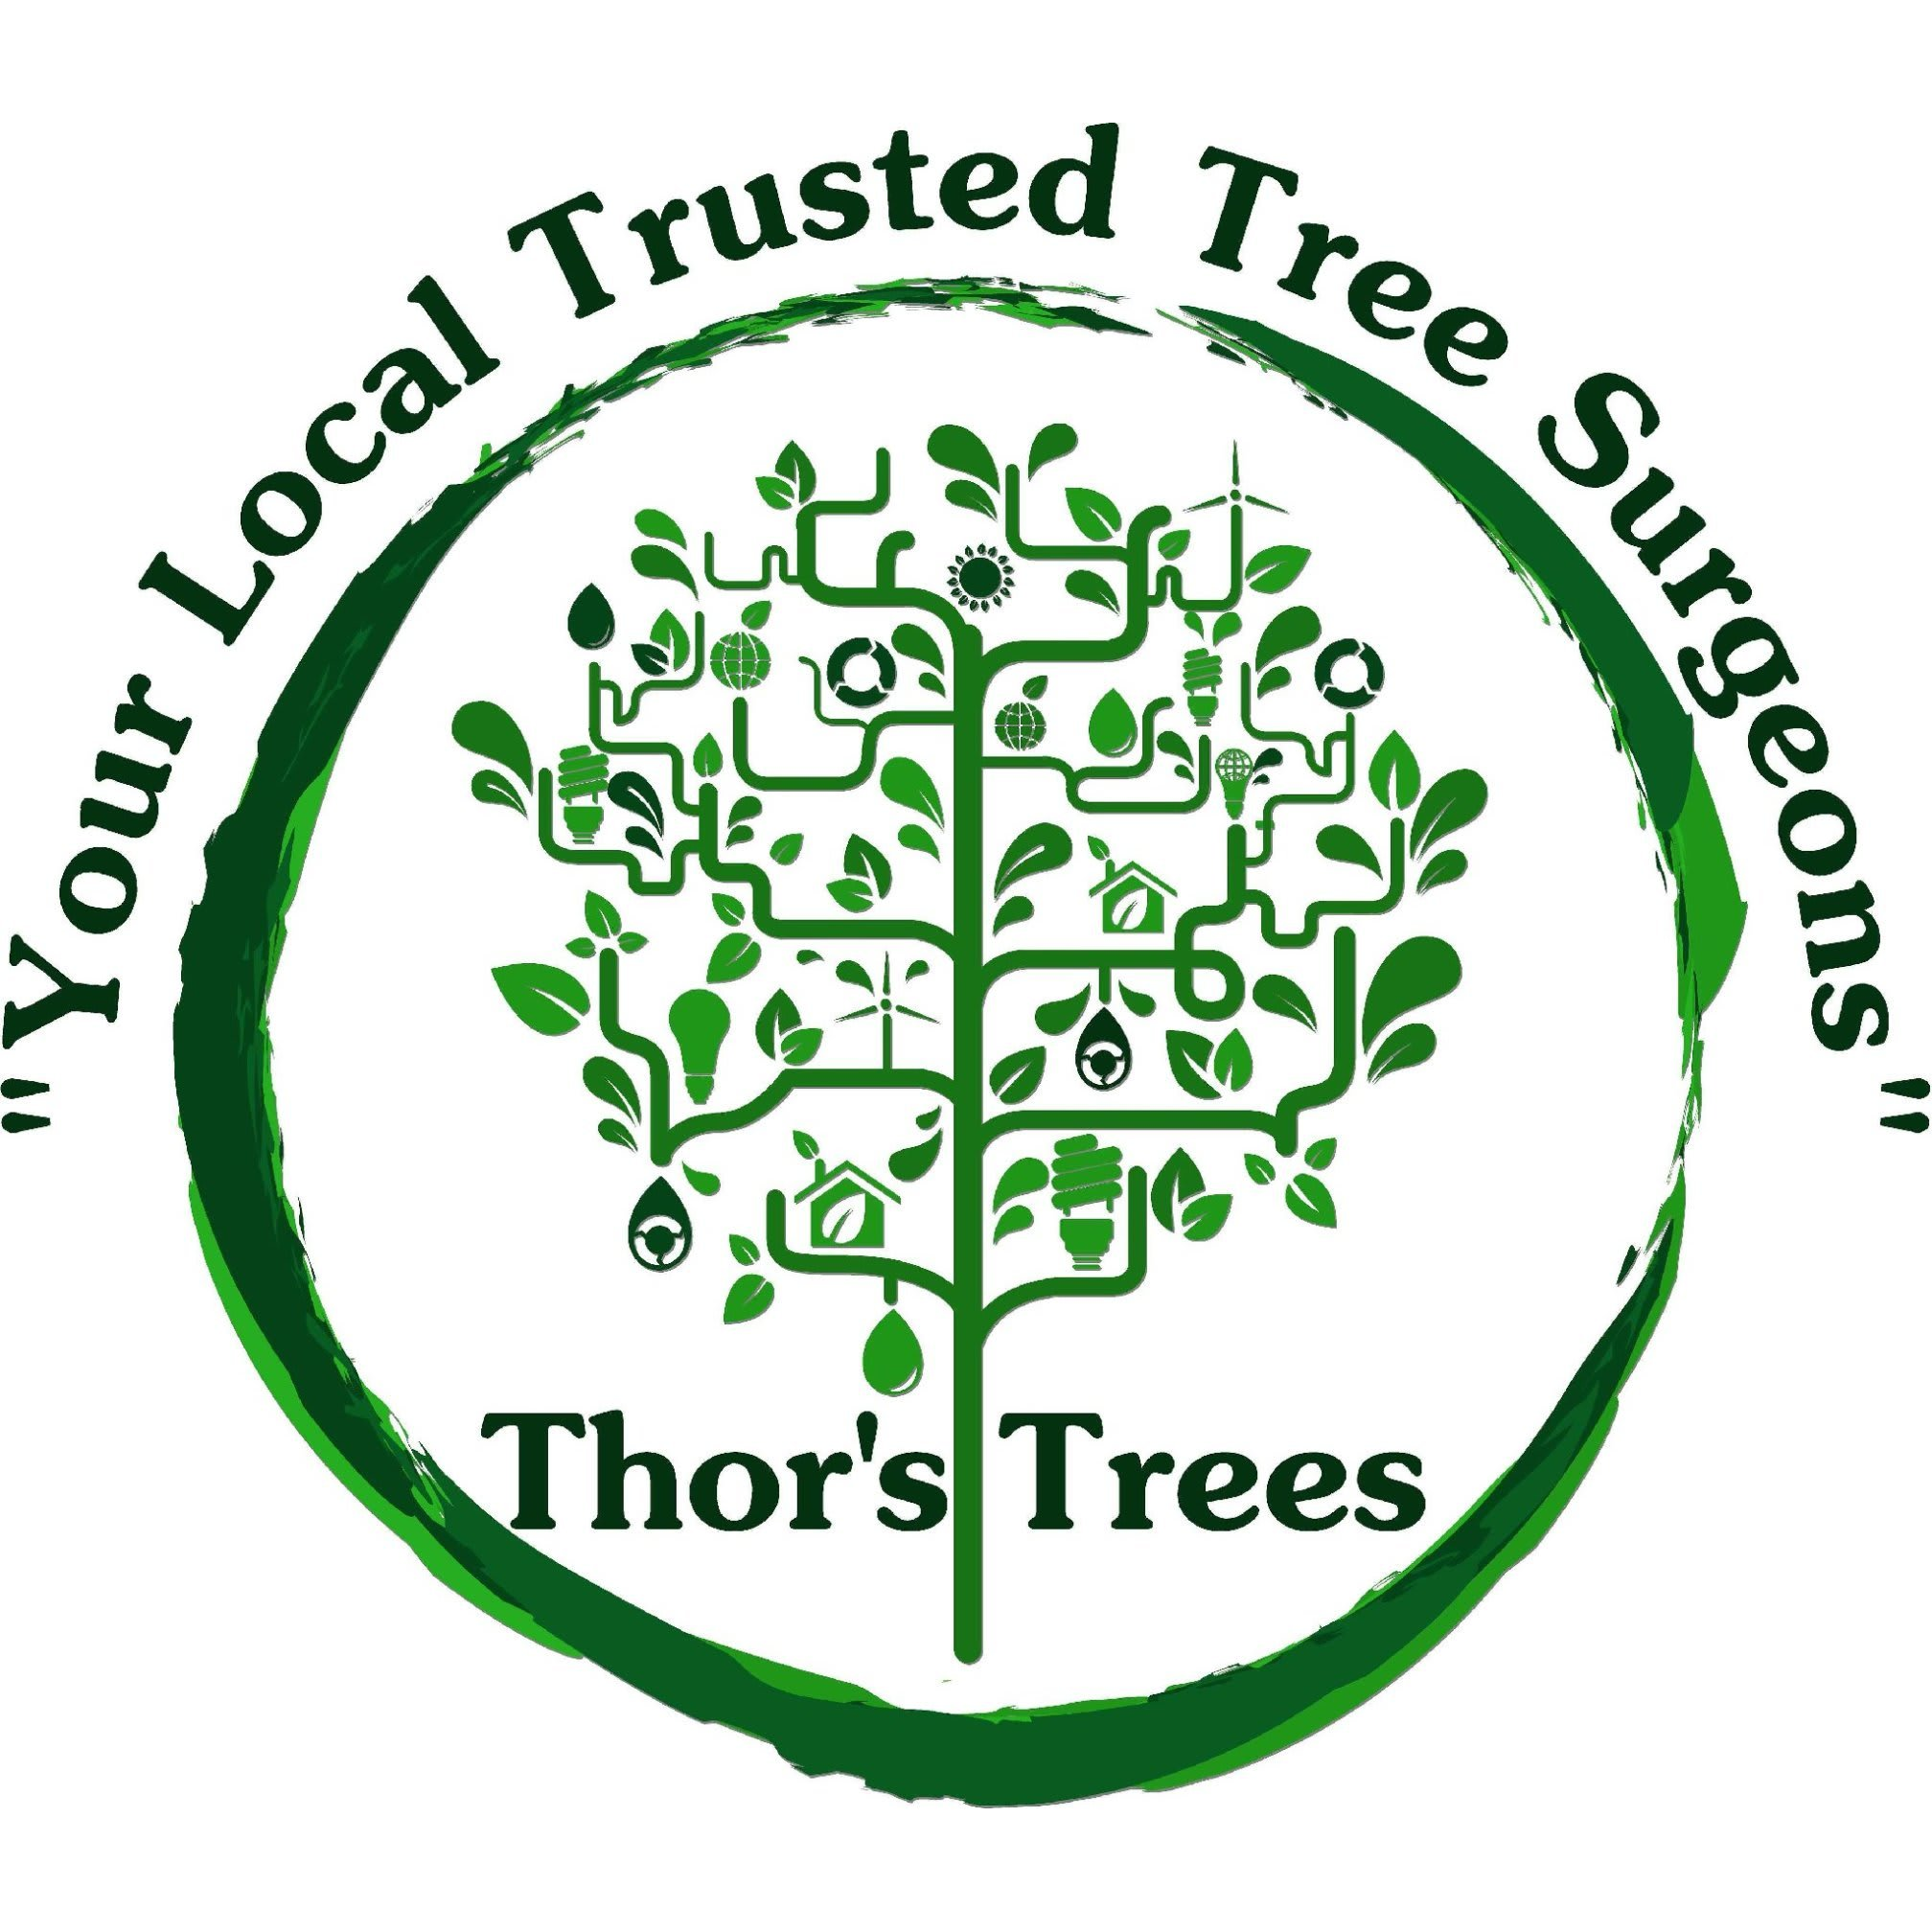 Thor's Trees - London, London N18 2PP - 07590 670409 | ShowMeLocal.com